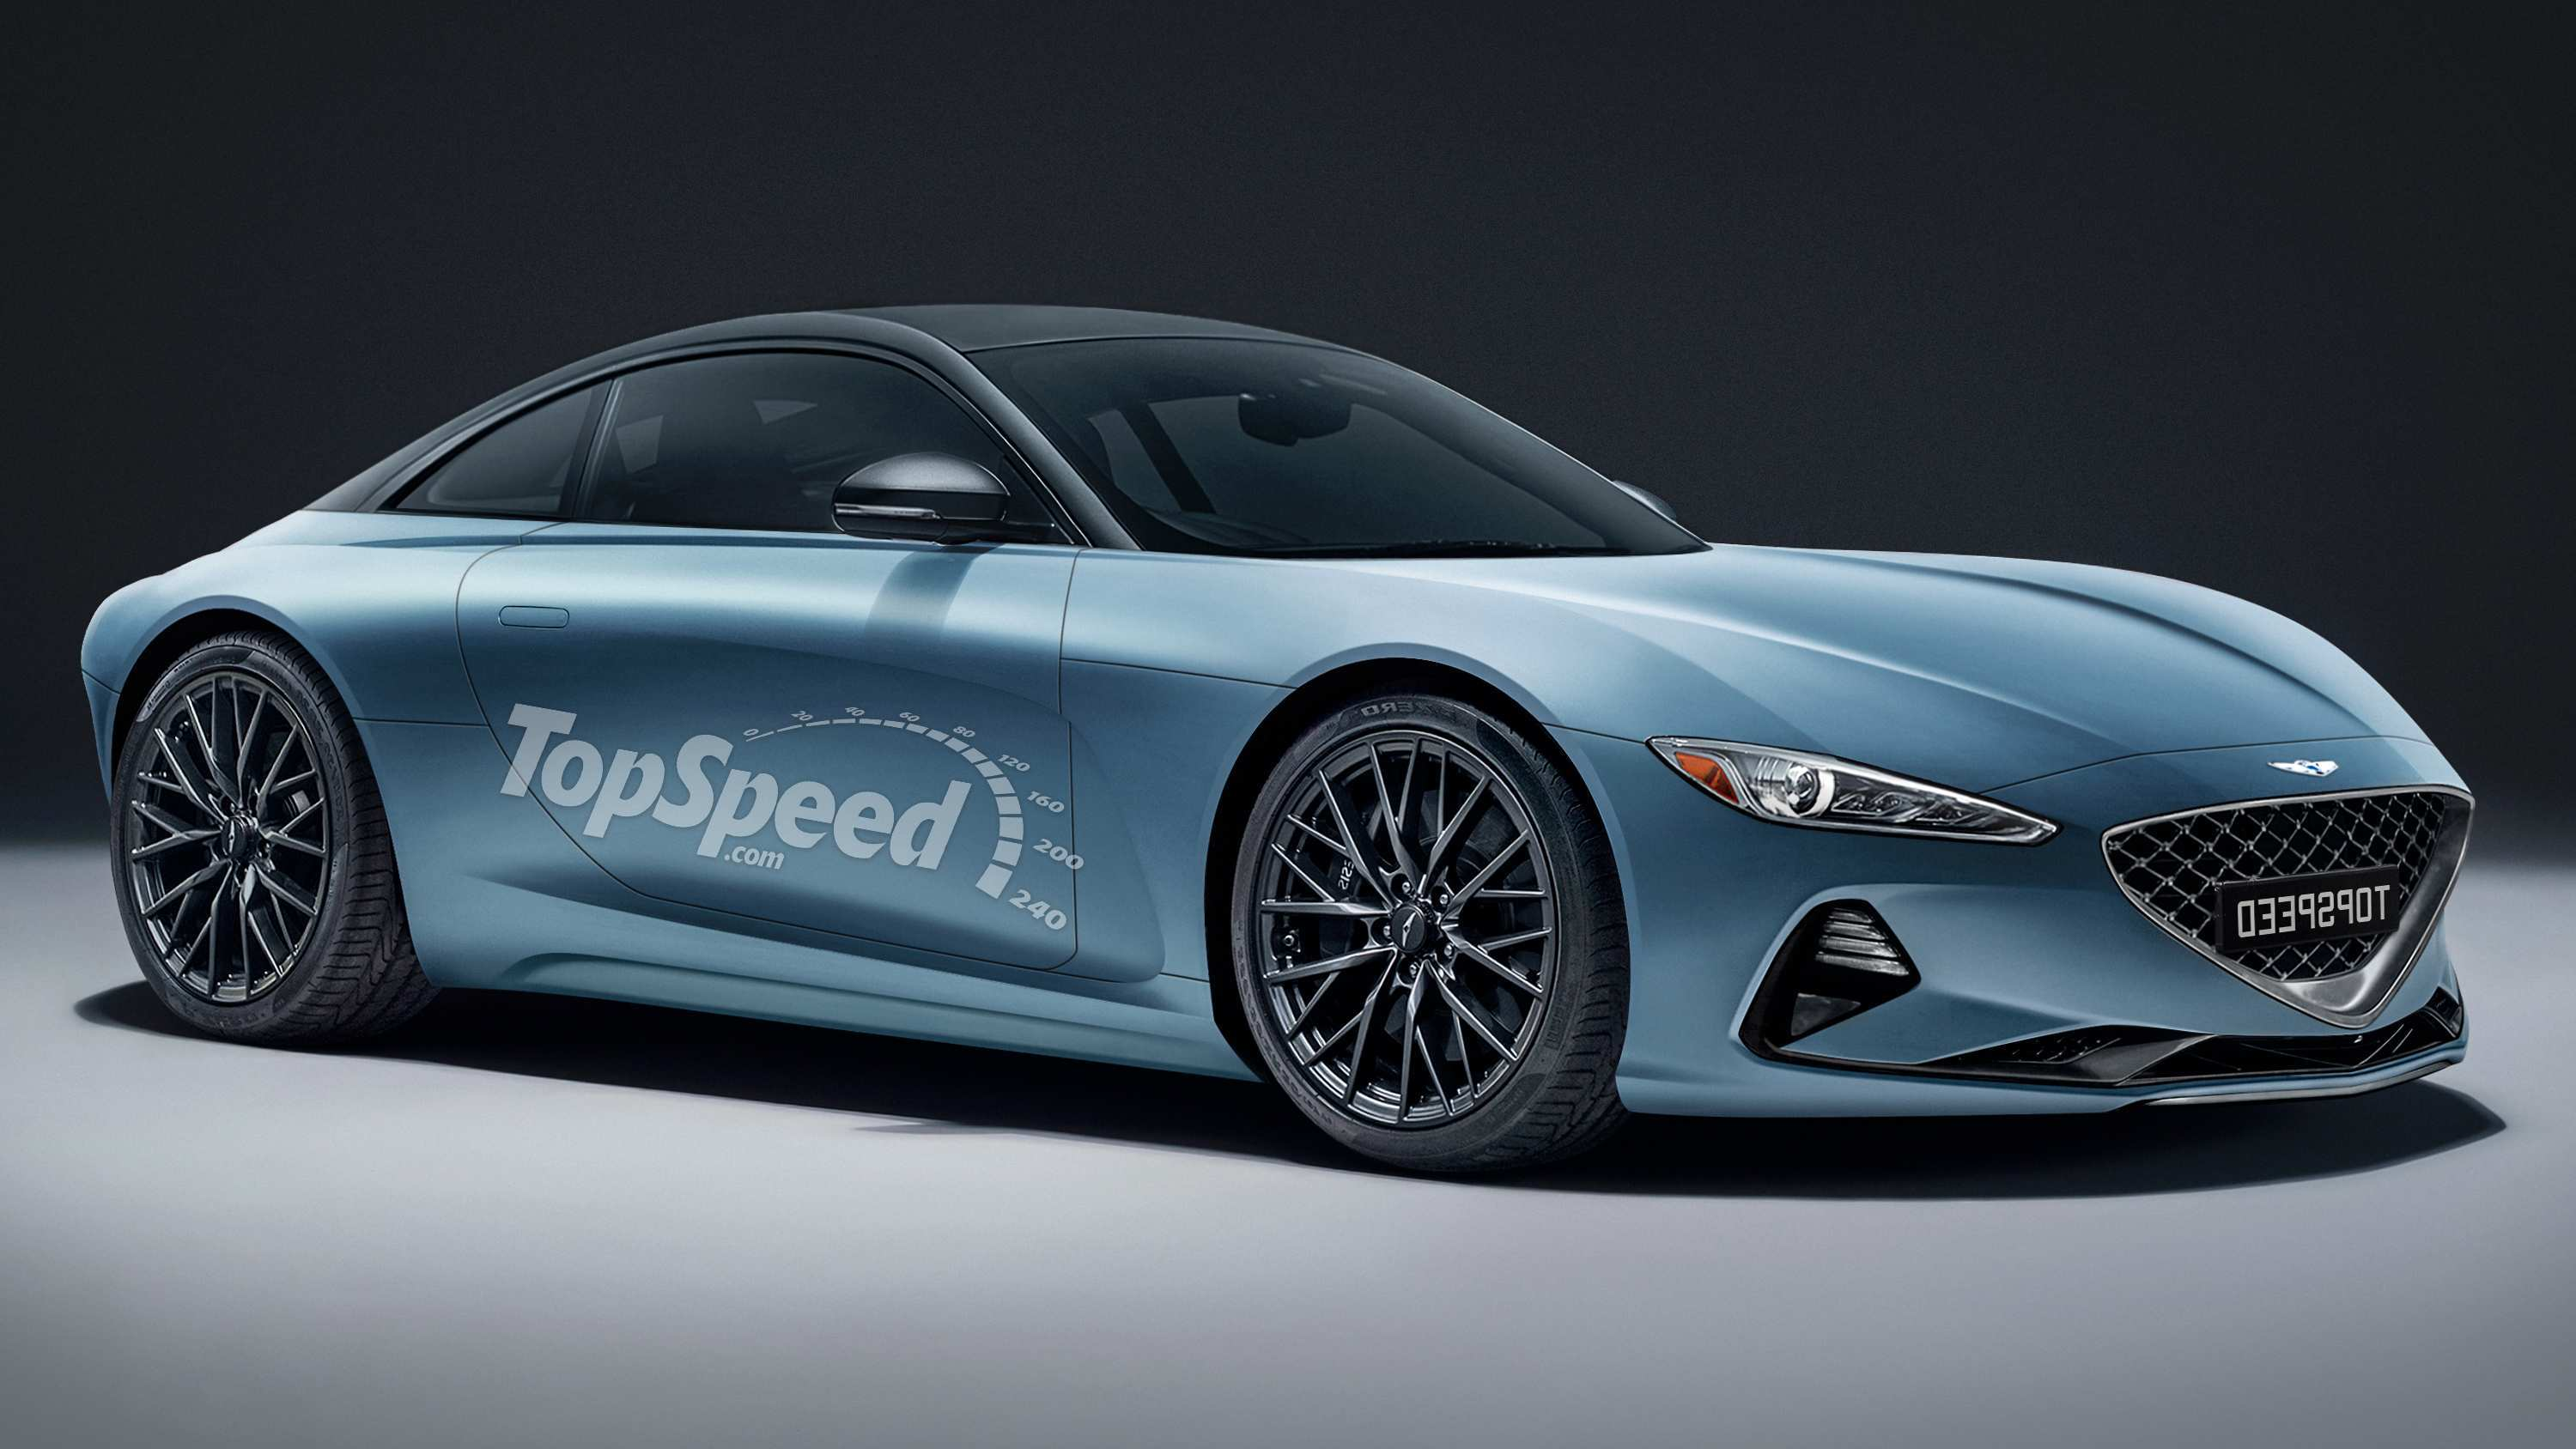 92 Gallery of 2020 Genesis Coupe New Concept with 2020 Genesis Coupe